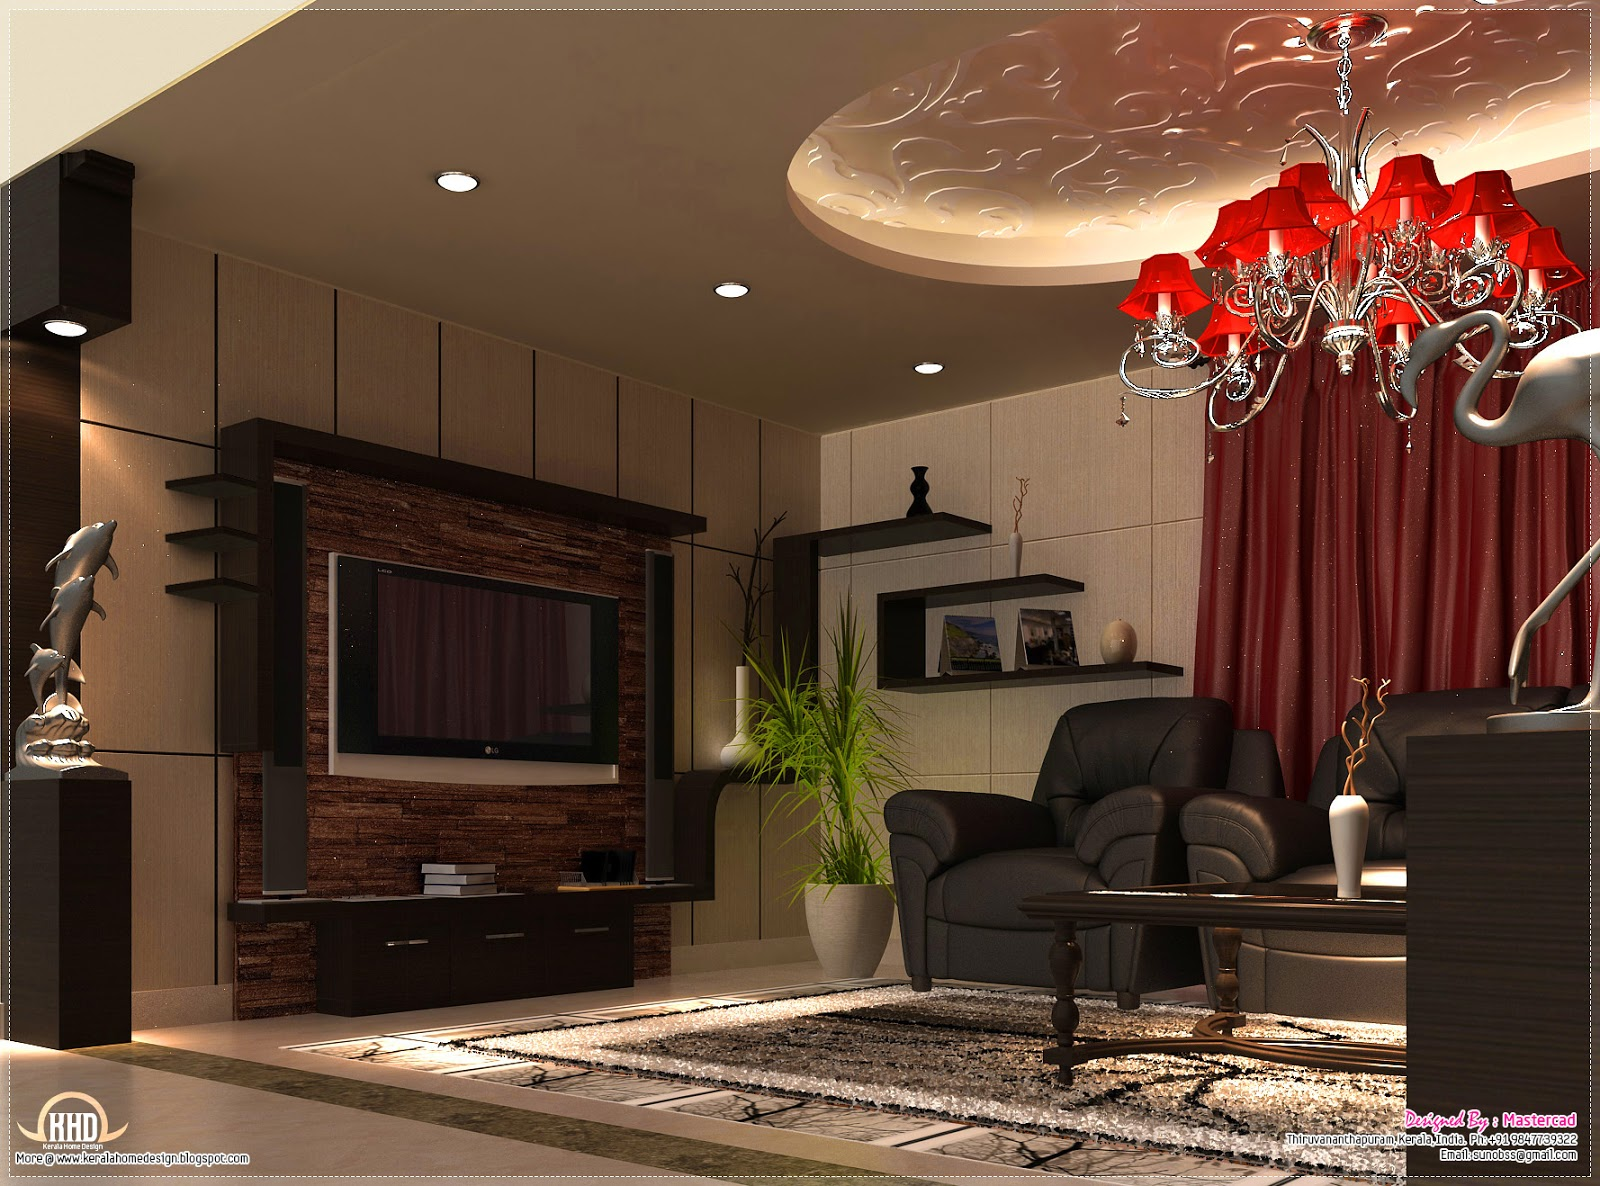 Interior design ideas kerala home design and floor plans for New house interior ideas